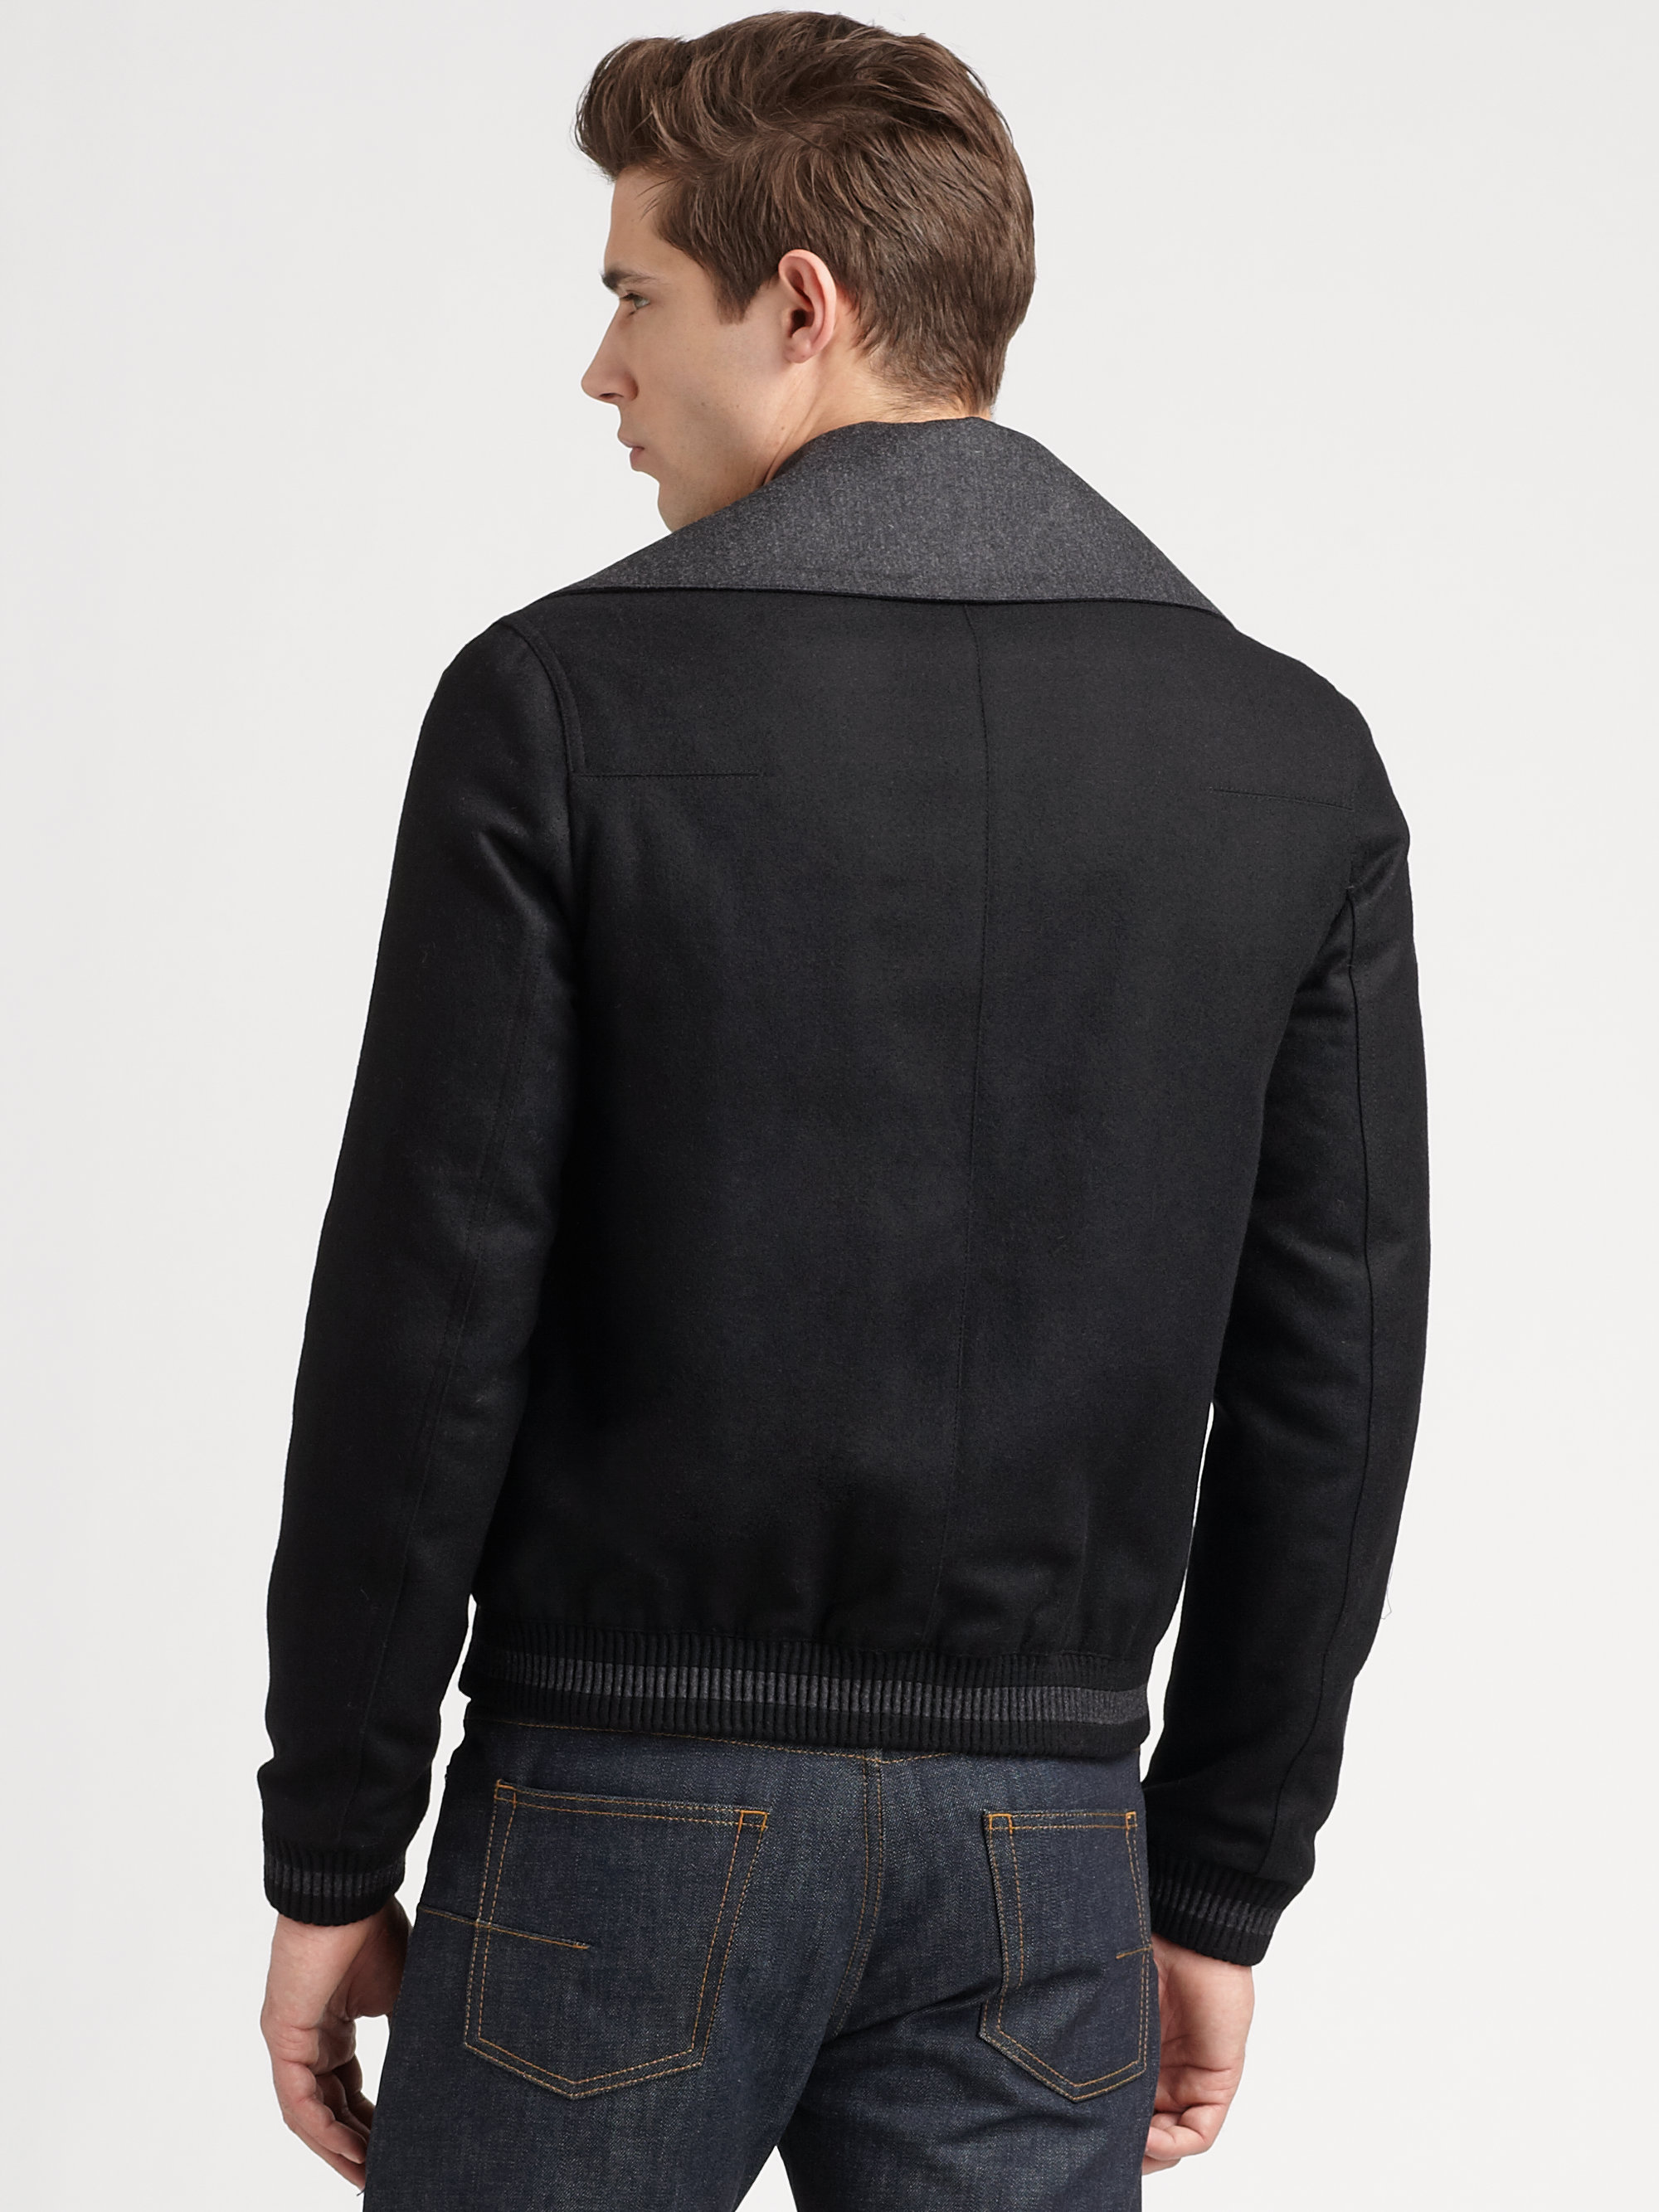 Dior homme Wool Bomber Jacket in Black for Men | Lyst